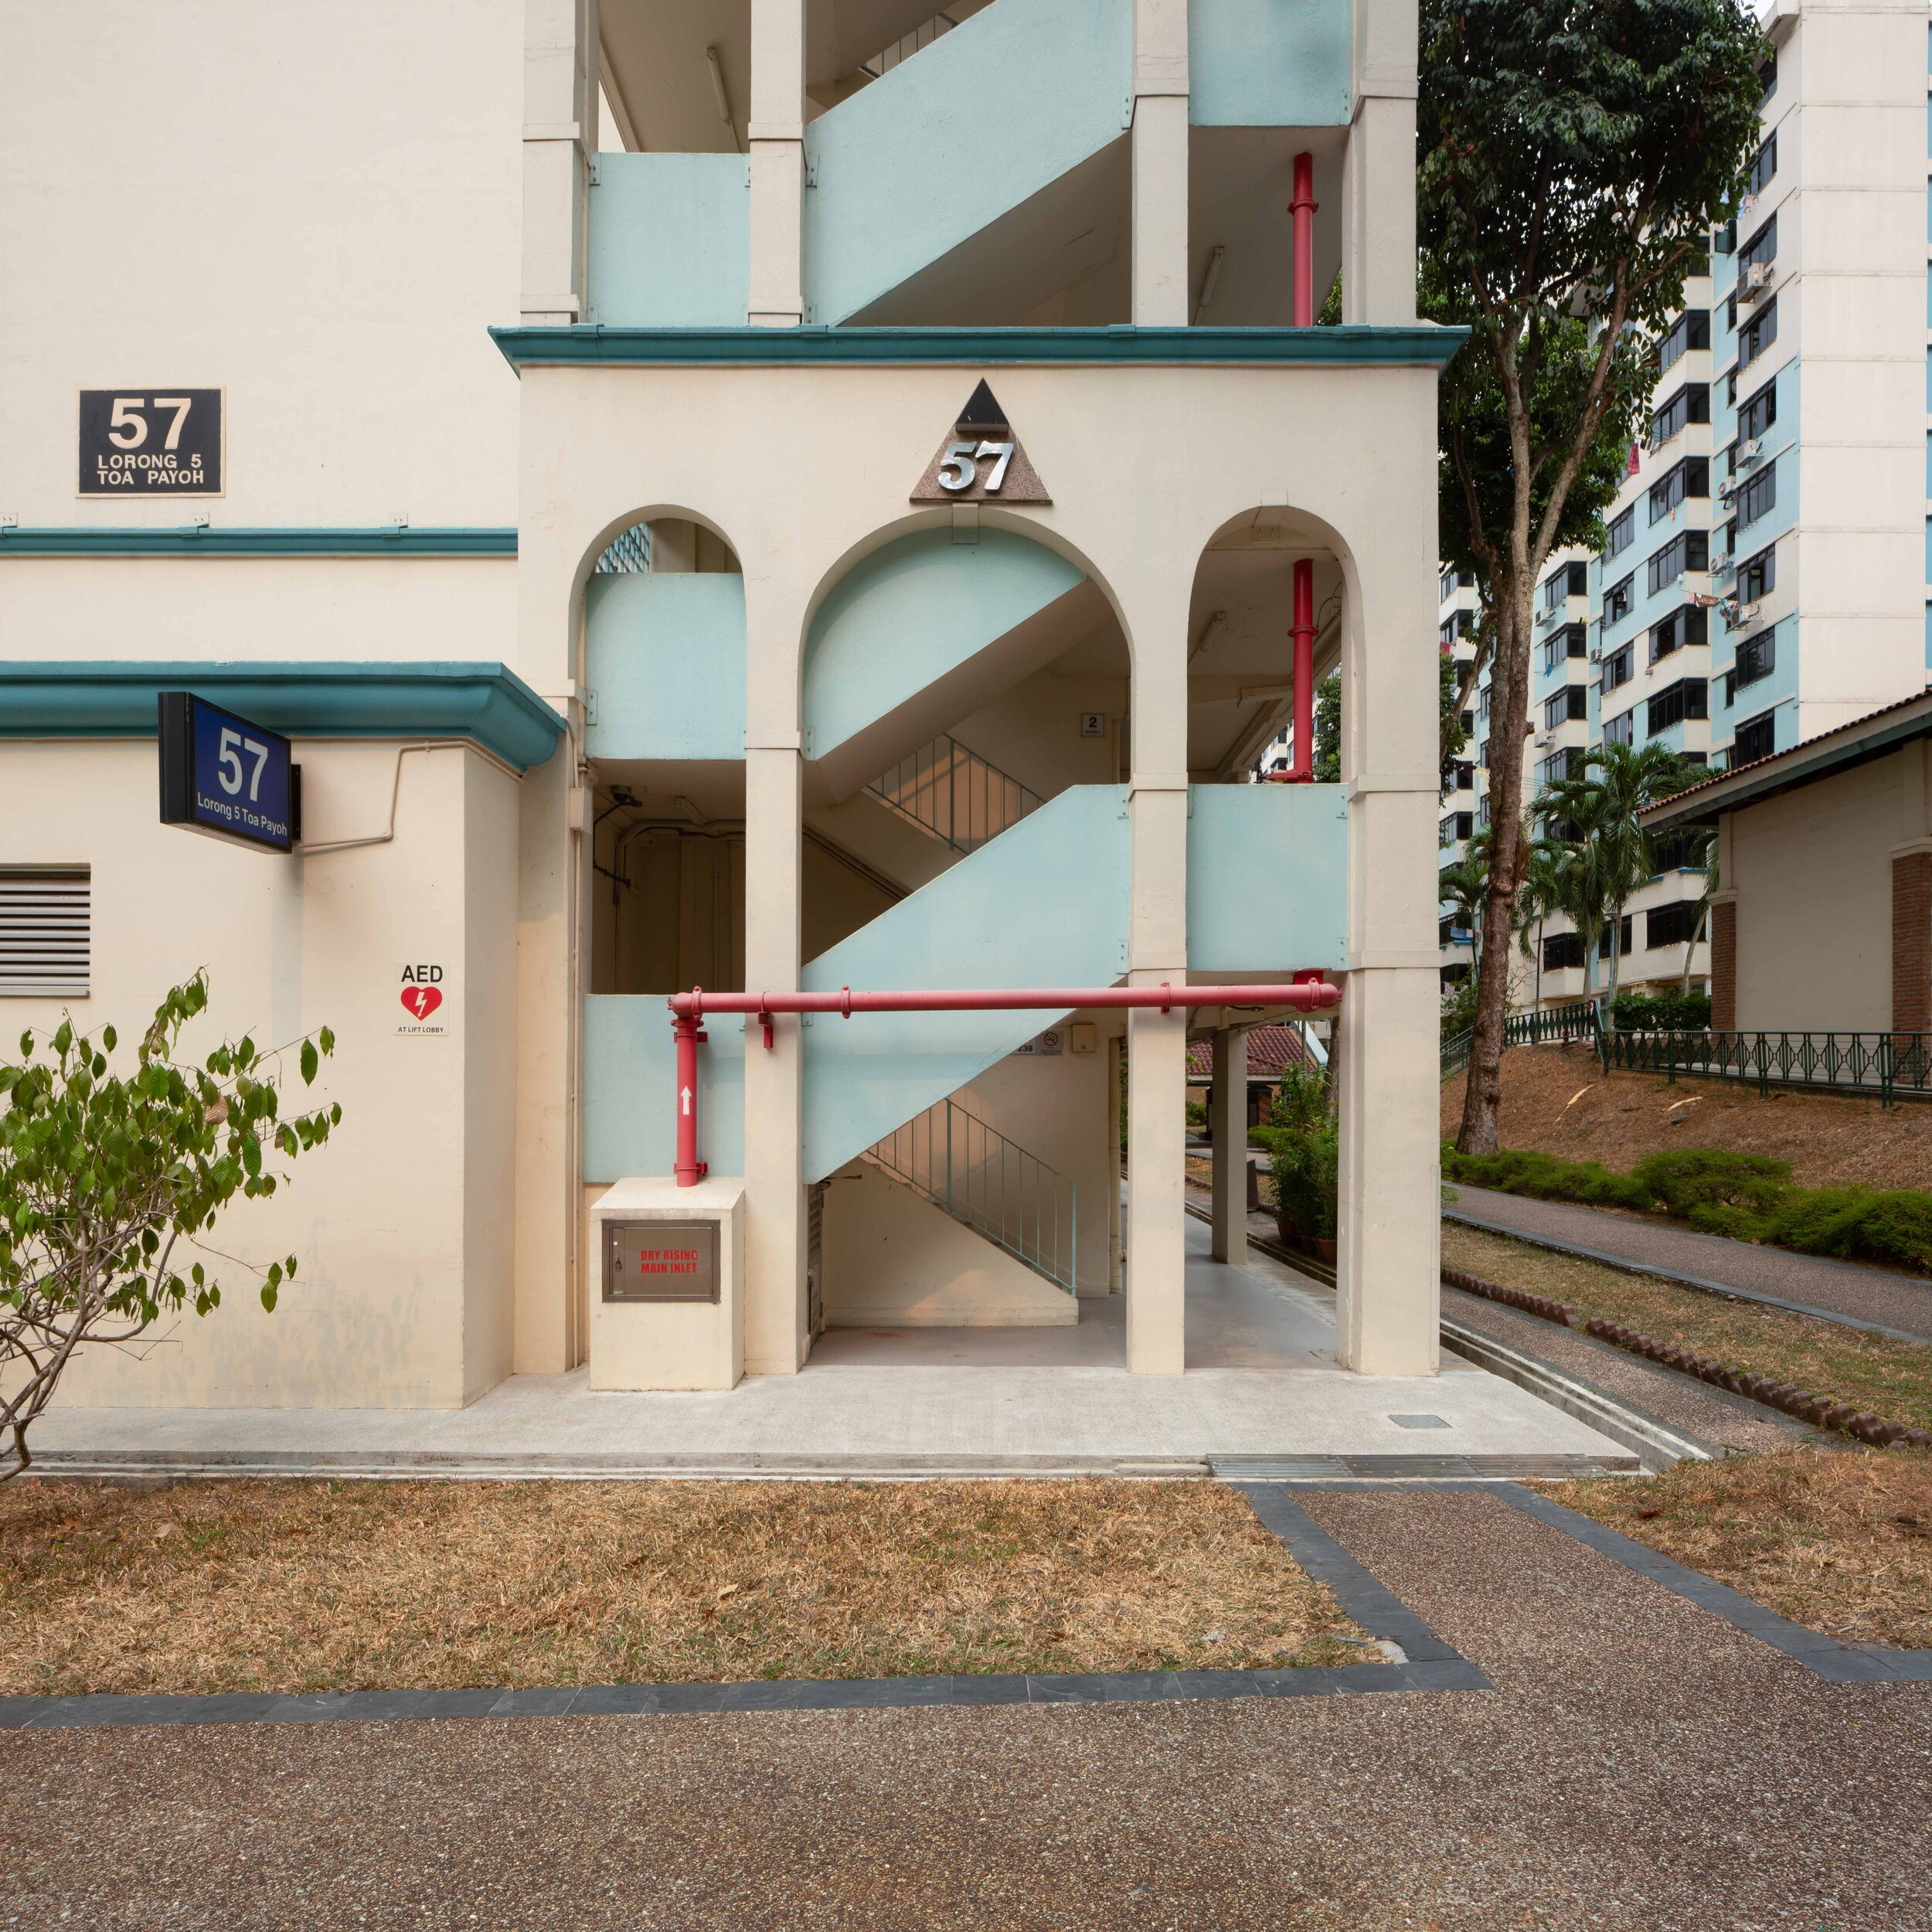 57 Lorong 5 Toa Payoh 190920 006, image by Andrew Campbell Nelson.jpg